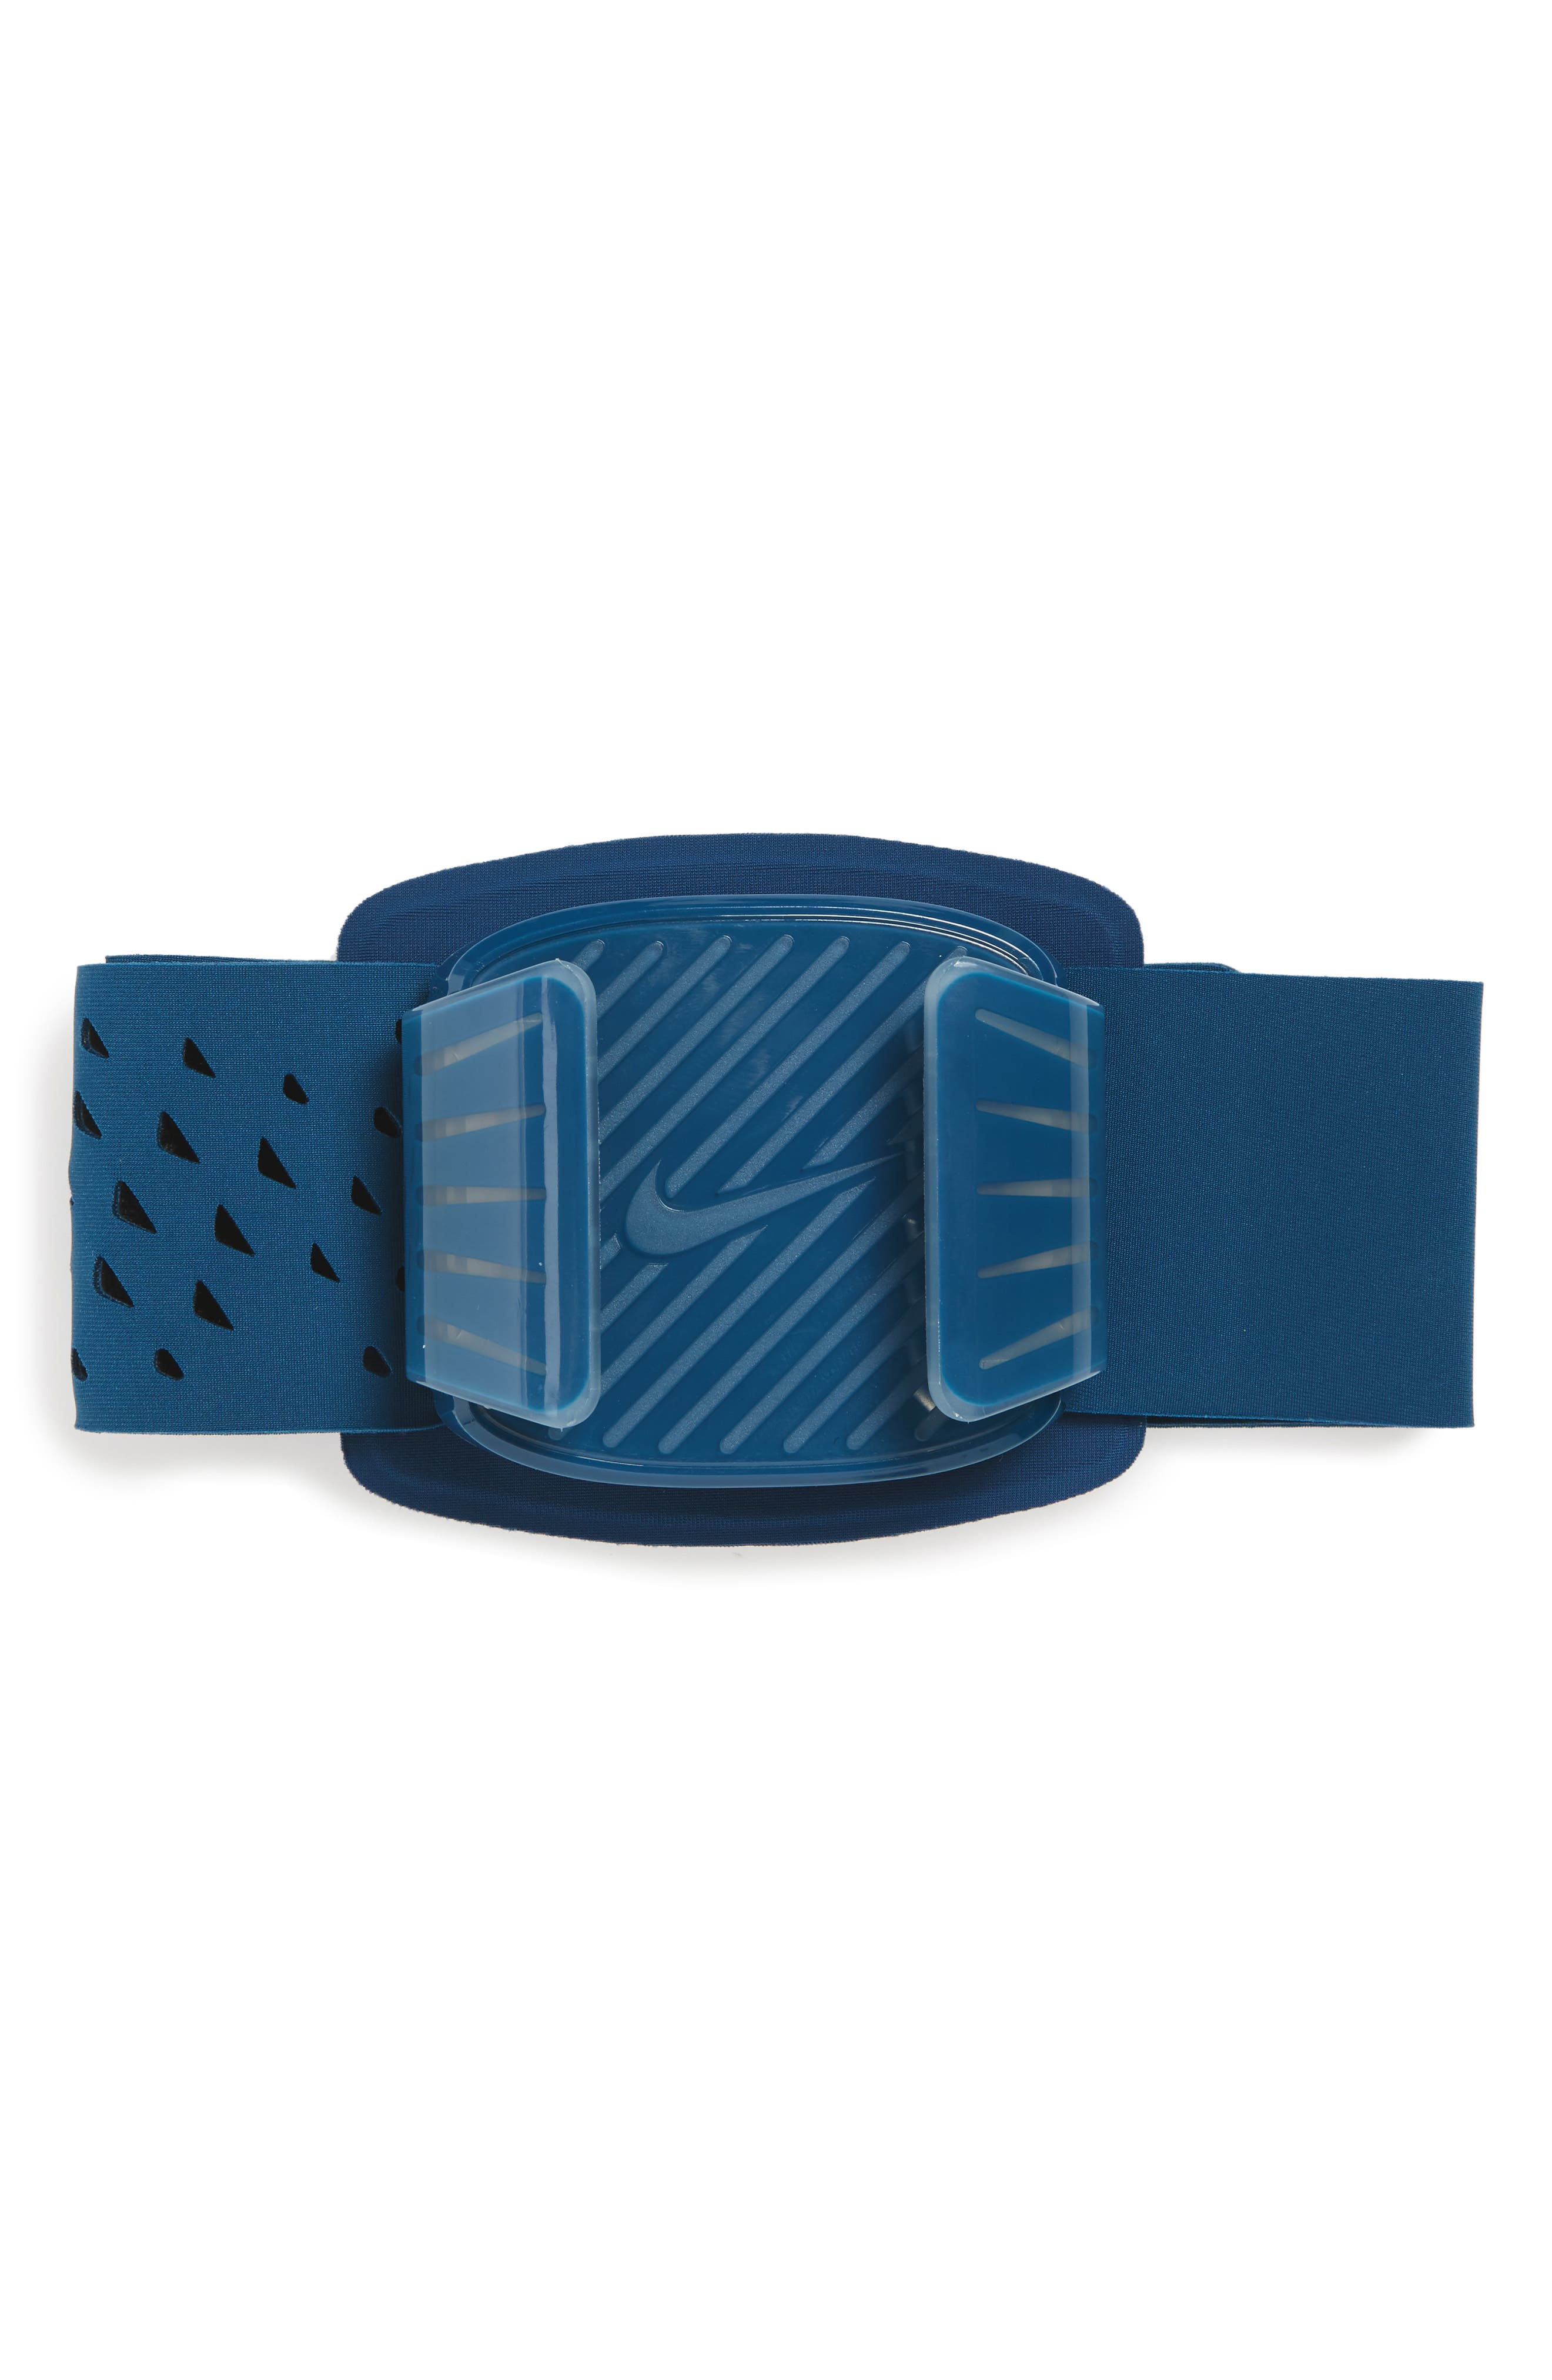 Universal Running Armband,                             Main thumbnail 1, color,                             BLUE FORCE/ CLEAR/ SILVER